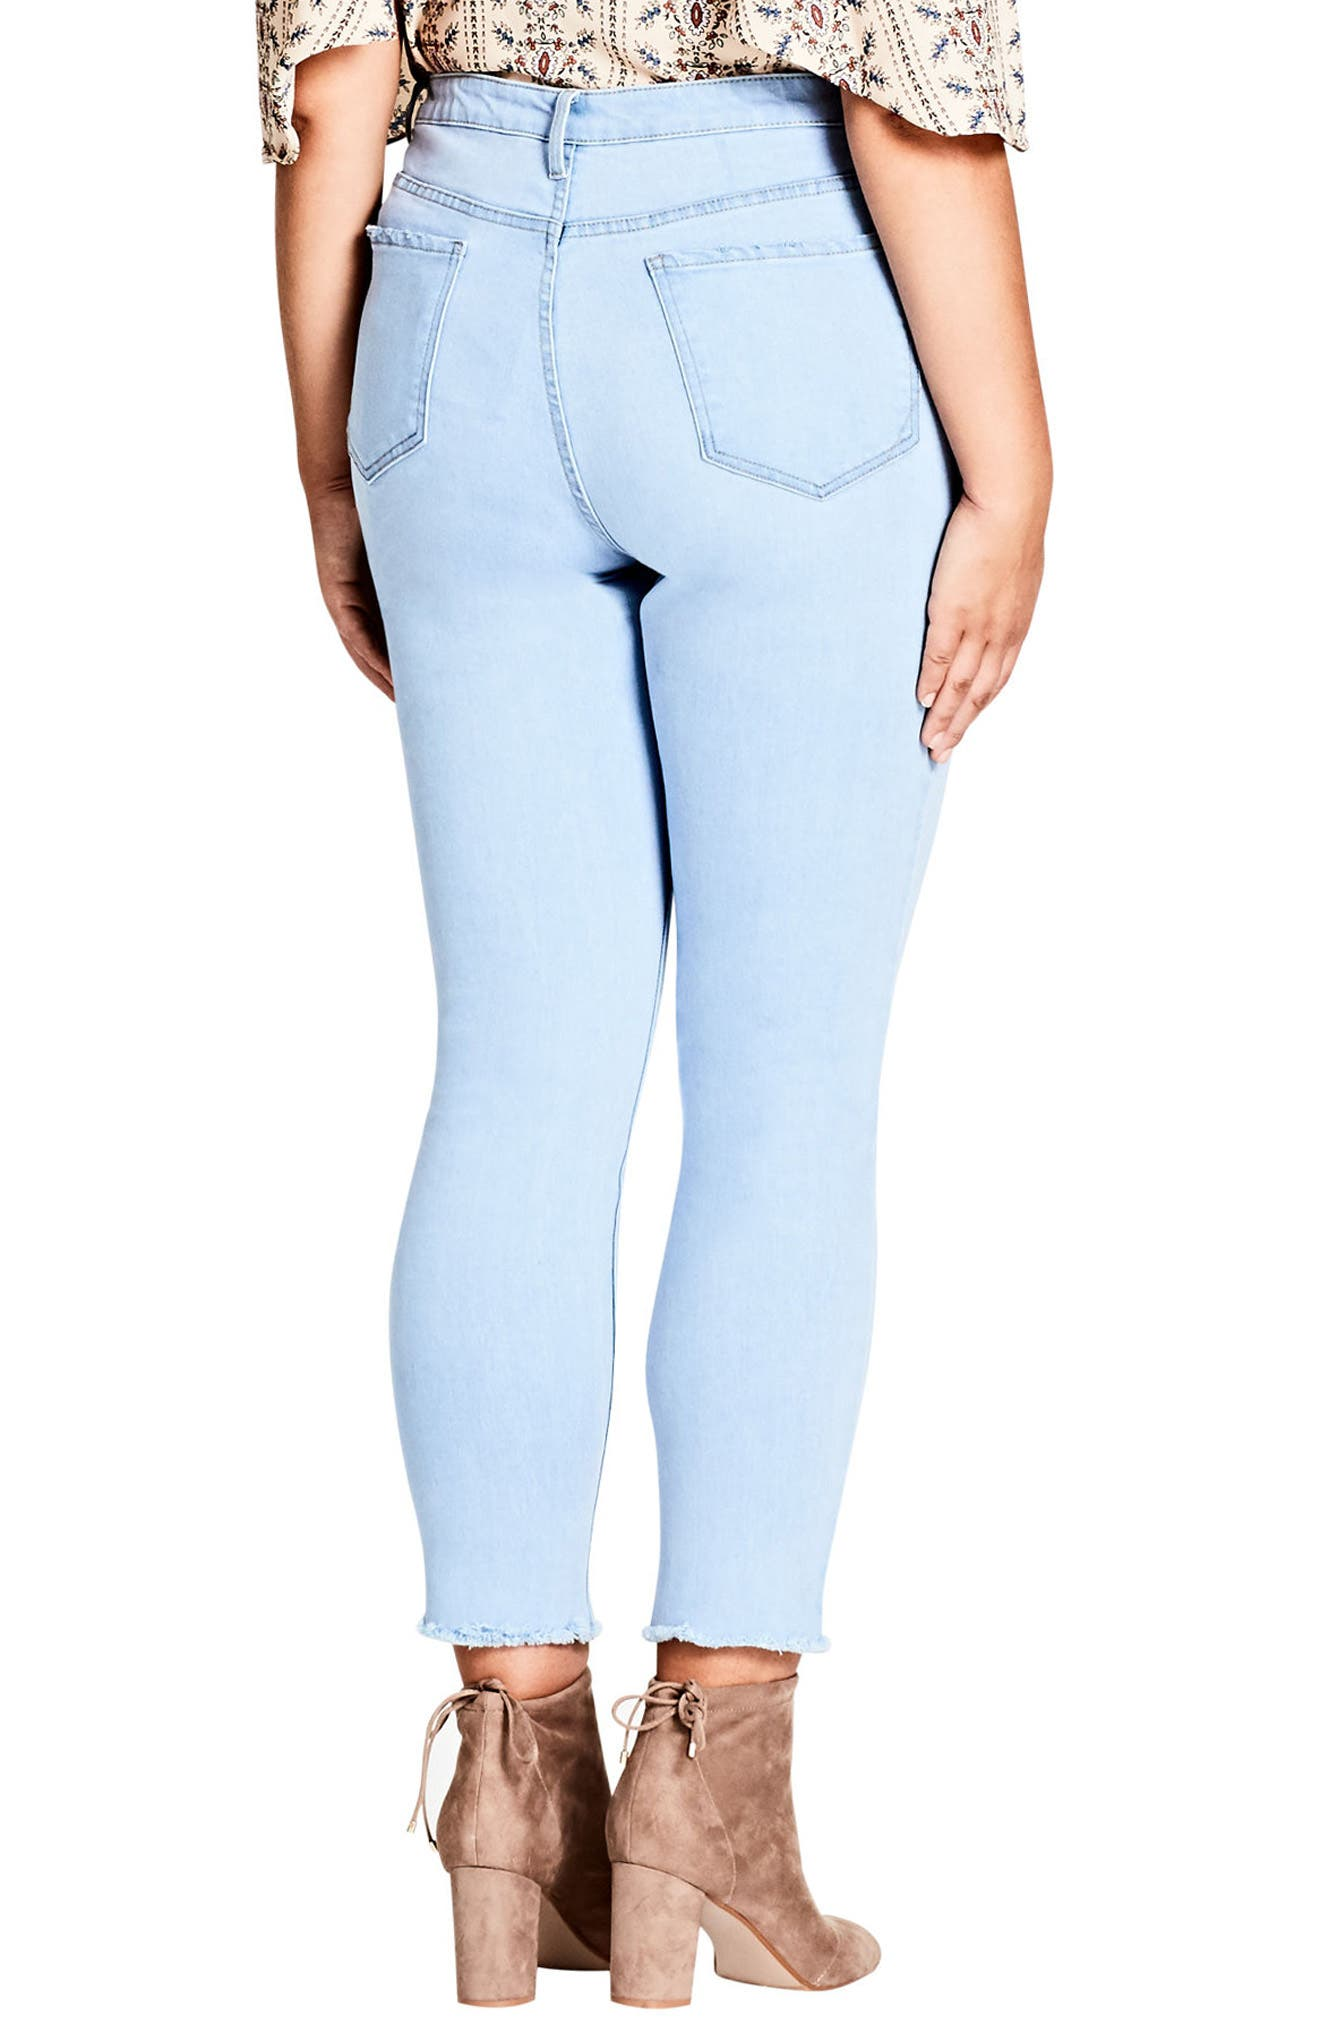 Ice Queen Crop Skinny Jeans,                             Alternate thumbnail 2, color,                             400